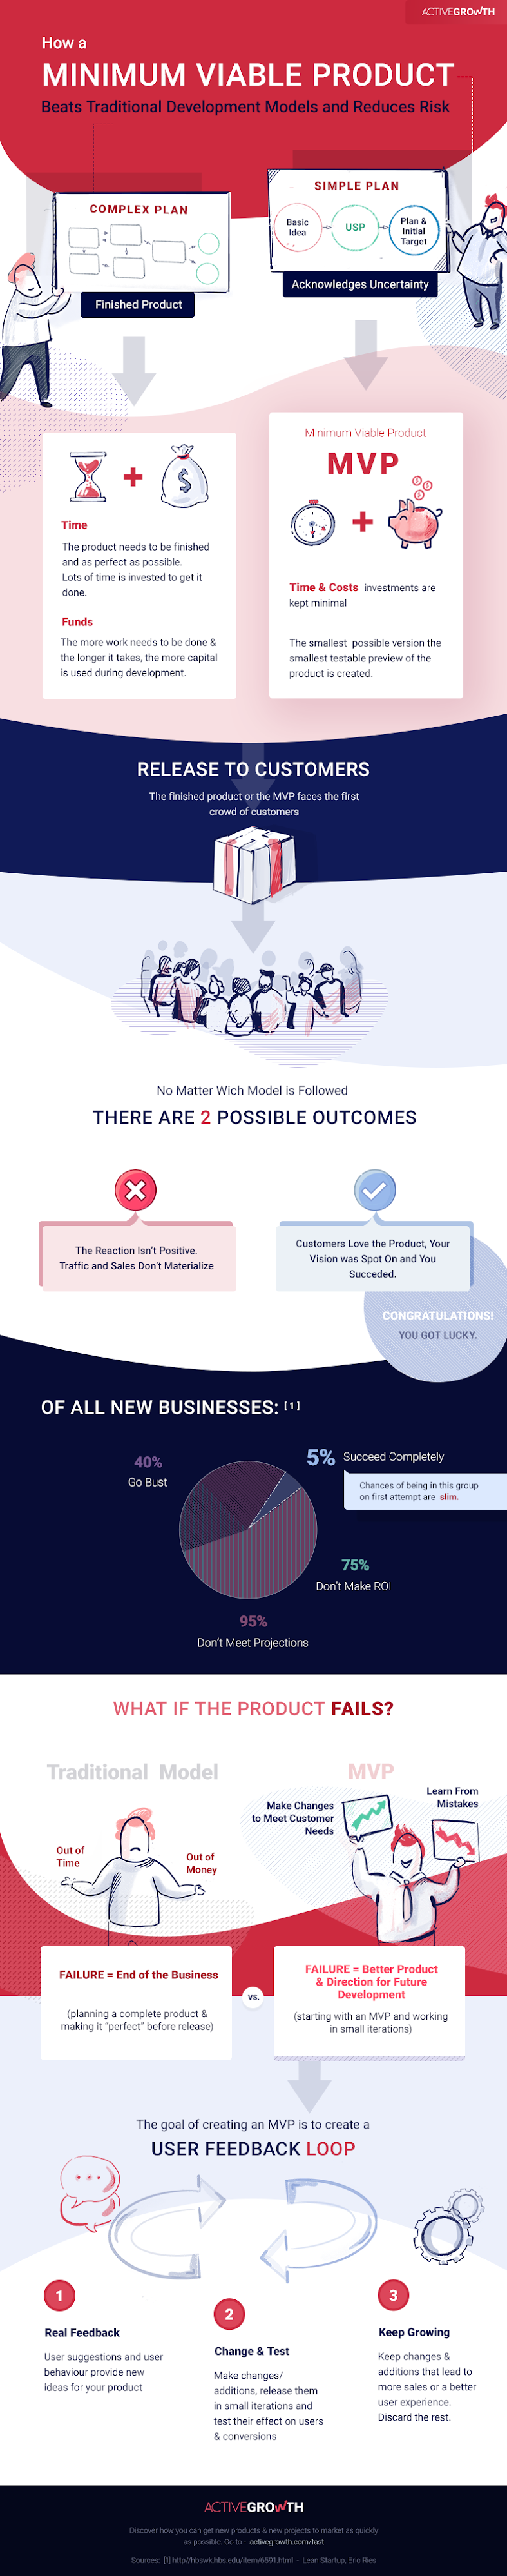 How to Get Your New Project to Market as Quickly as Possible #infographic